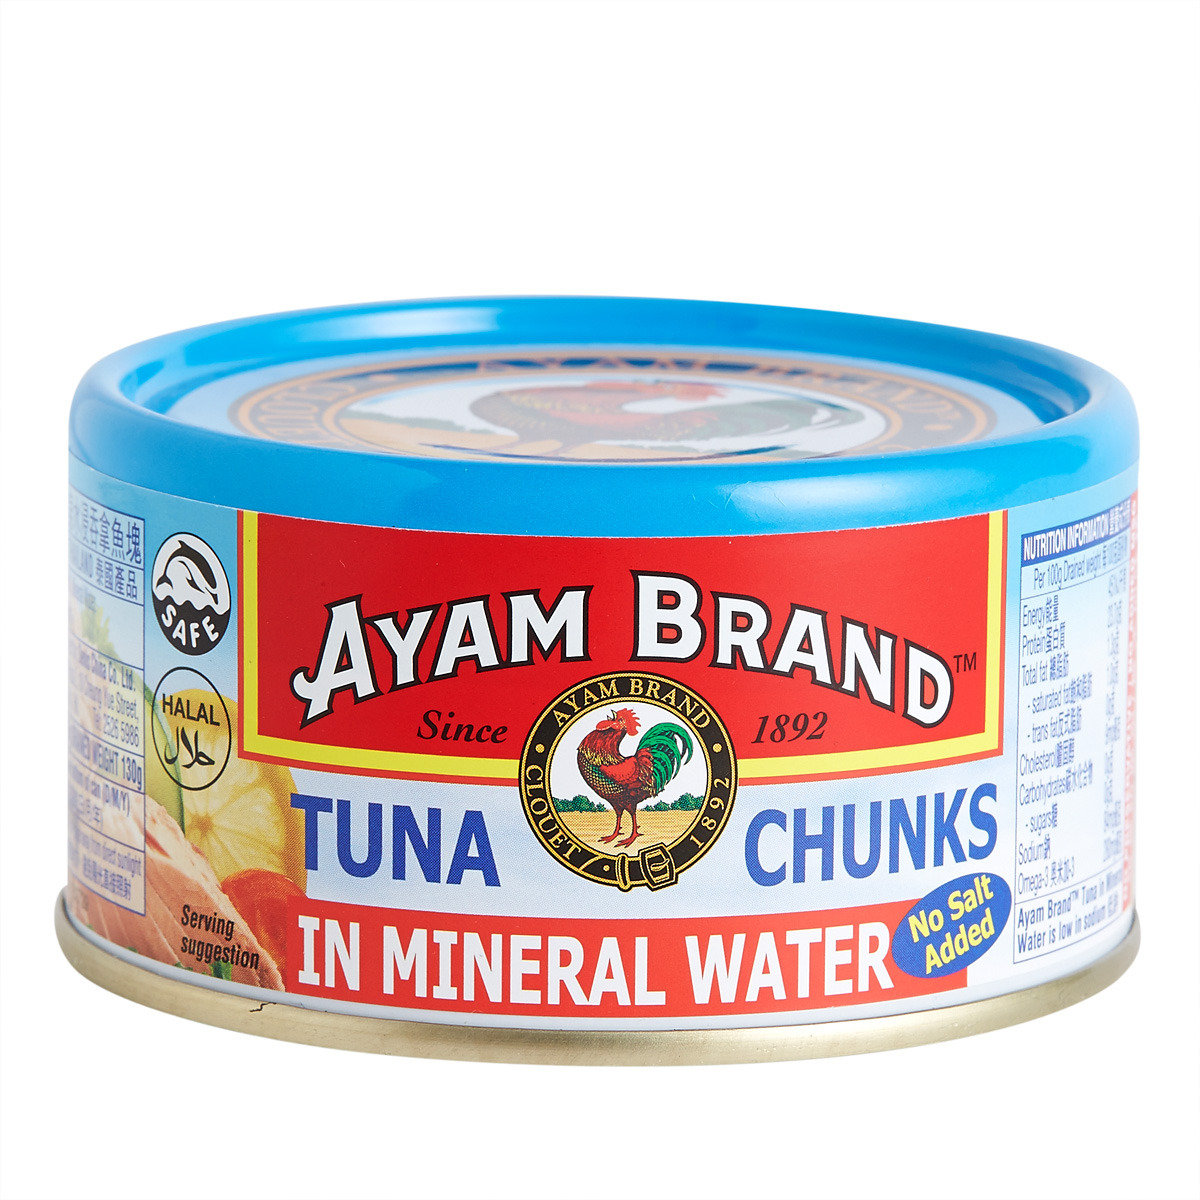 Tuna Chunks in Mineral Water